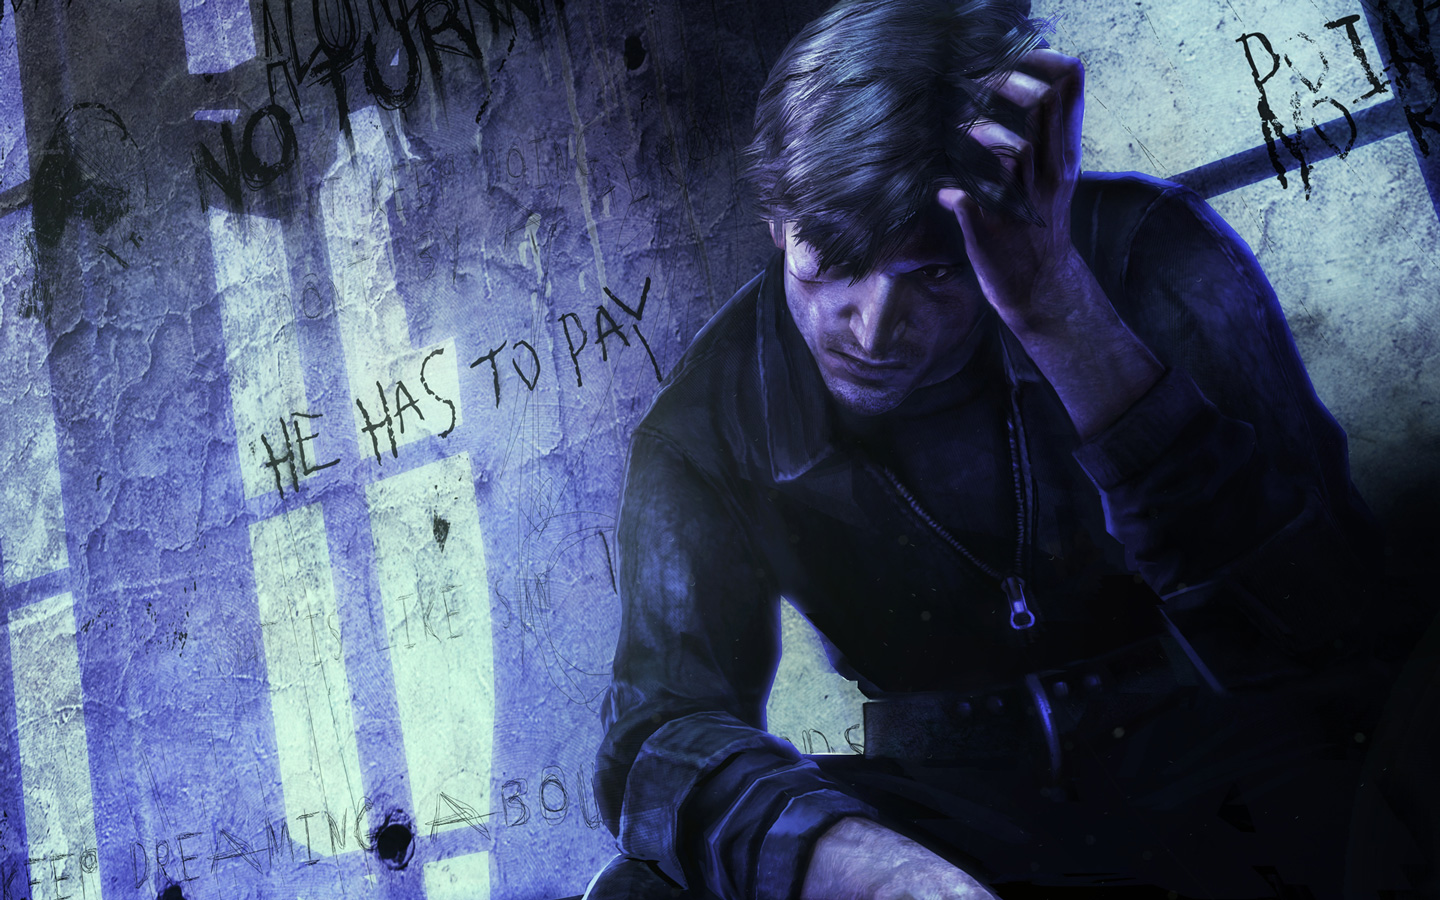 Silent Hill: Downpour Wallpaper in 1440x900